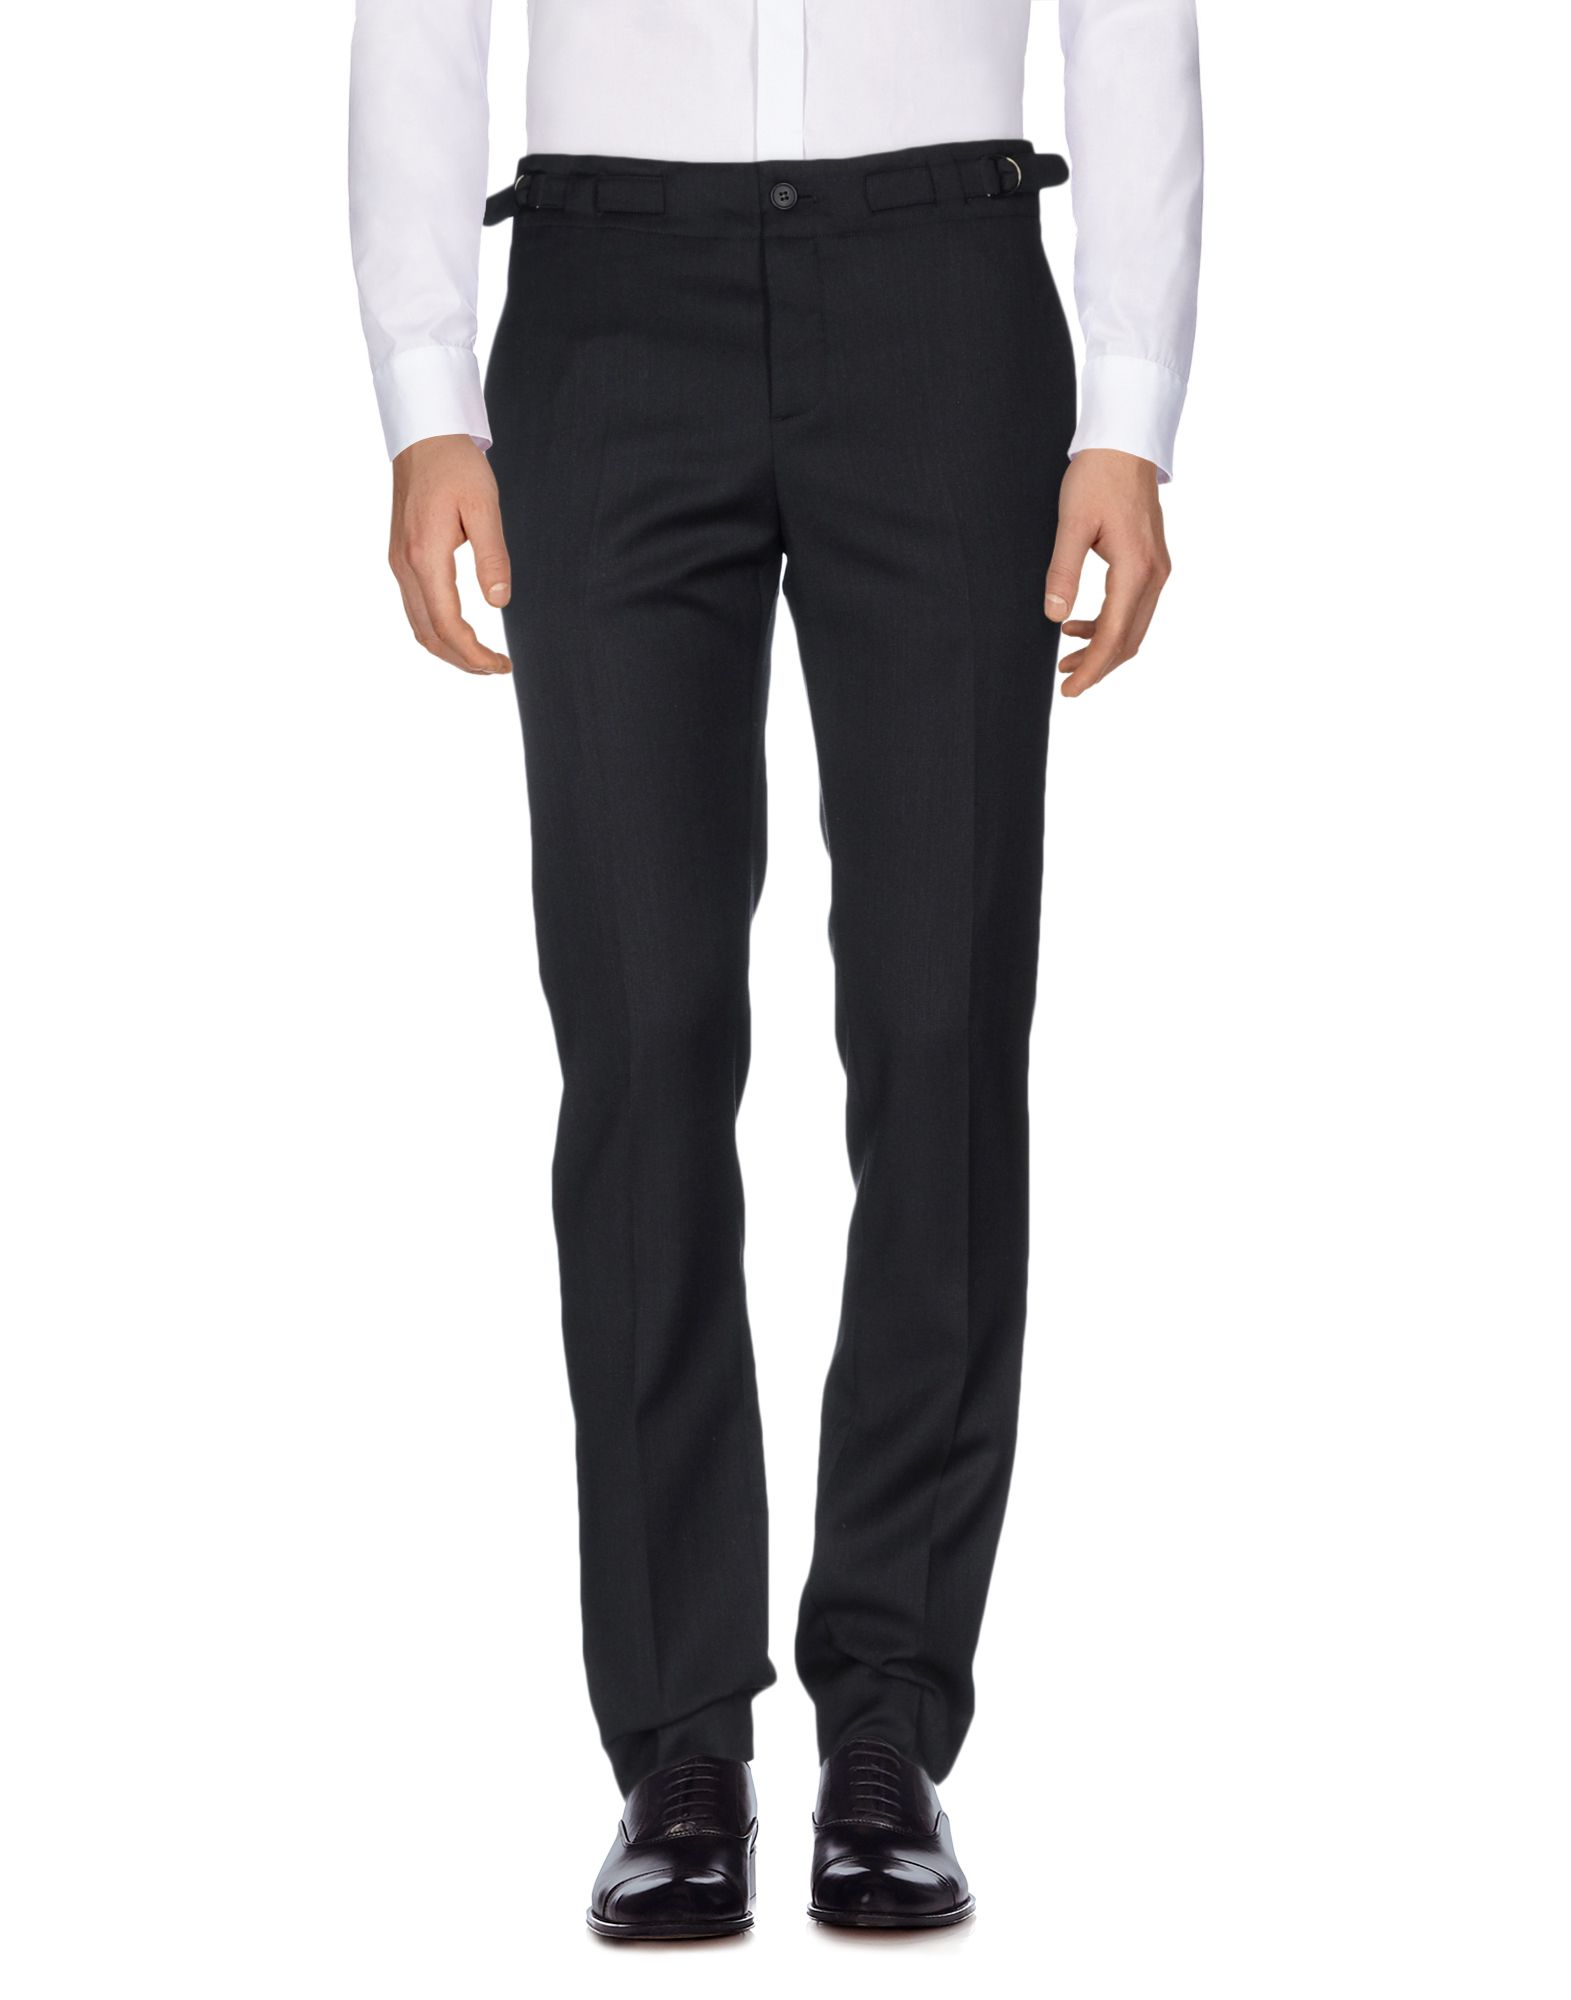 FAÇONNABLE Casual Pants in Black